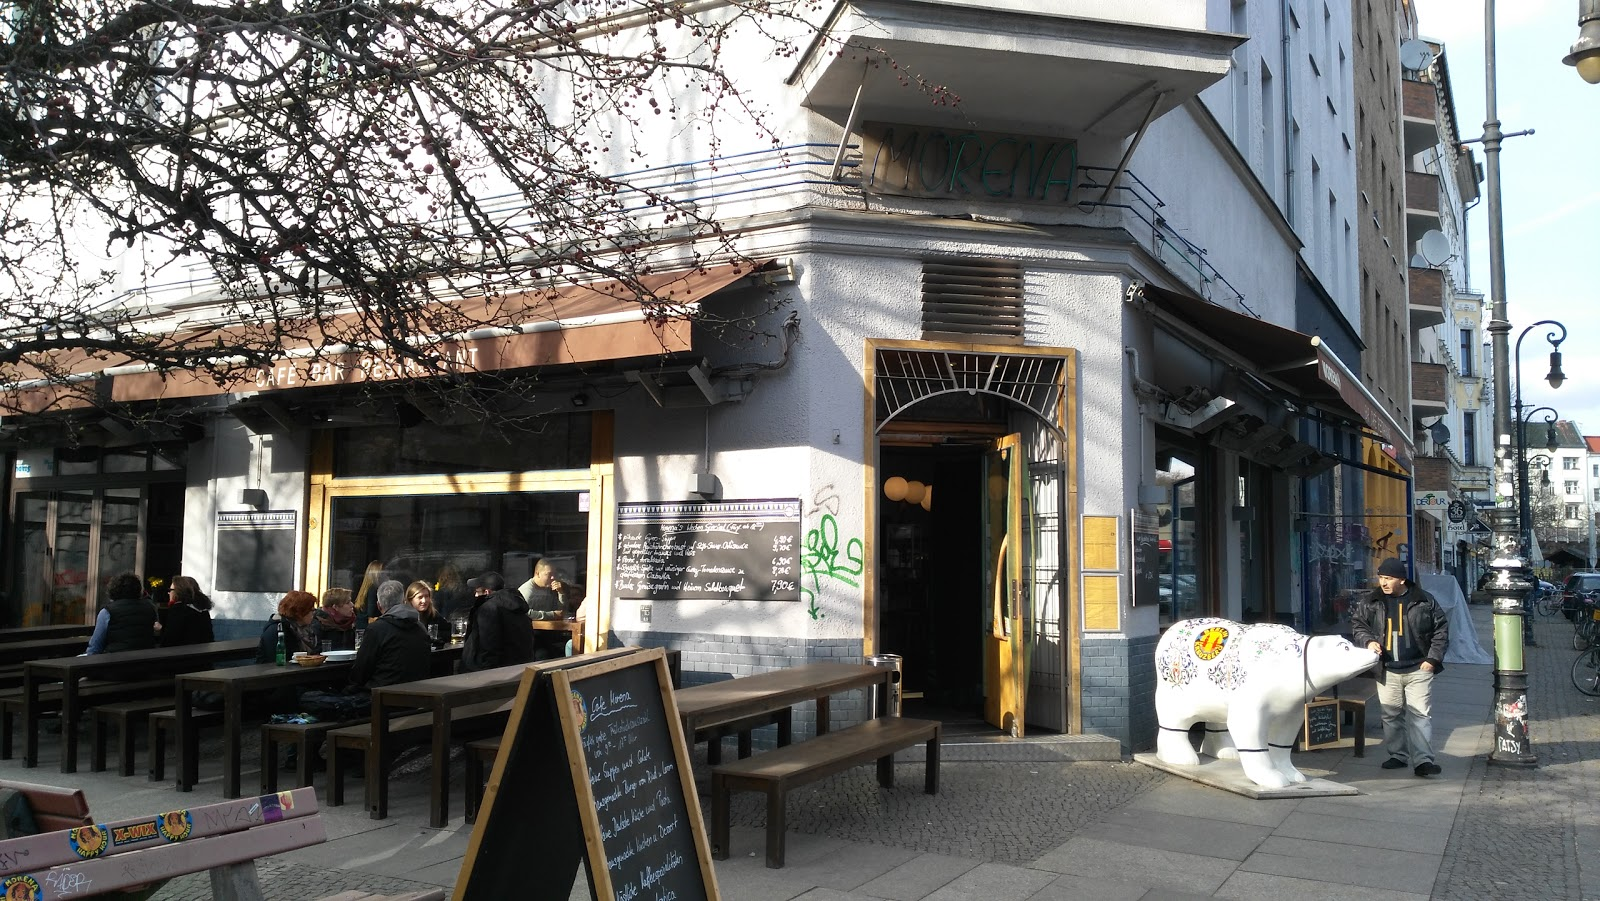 Cafe Morena: A Work-Friendly Place in Berlin